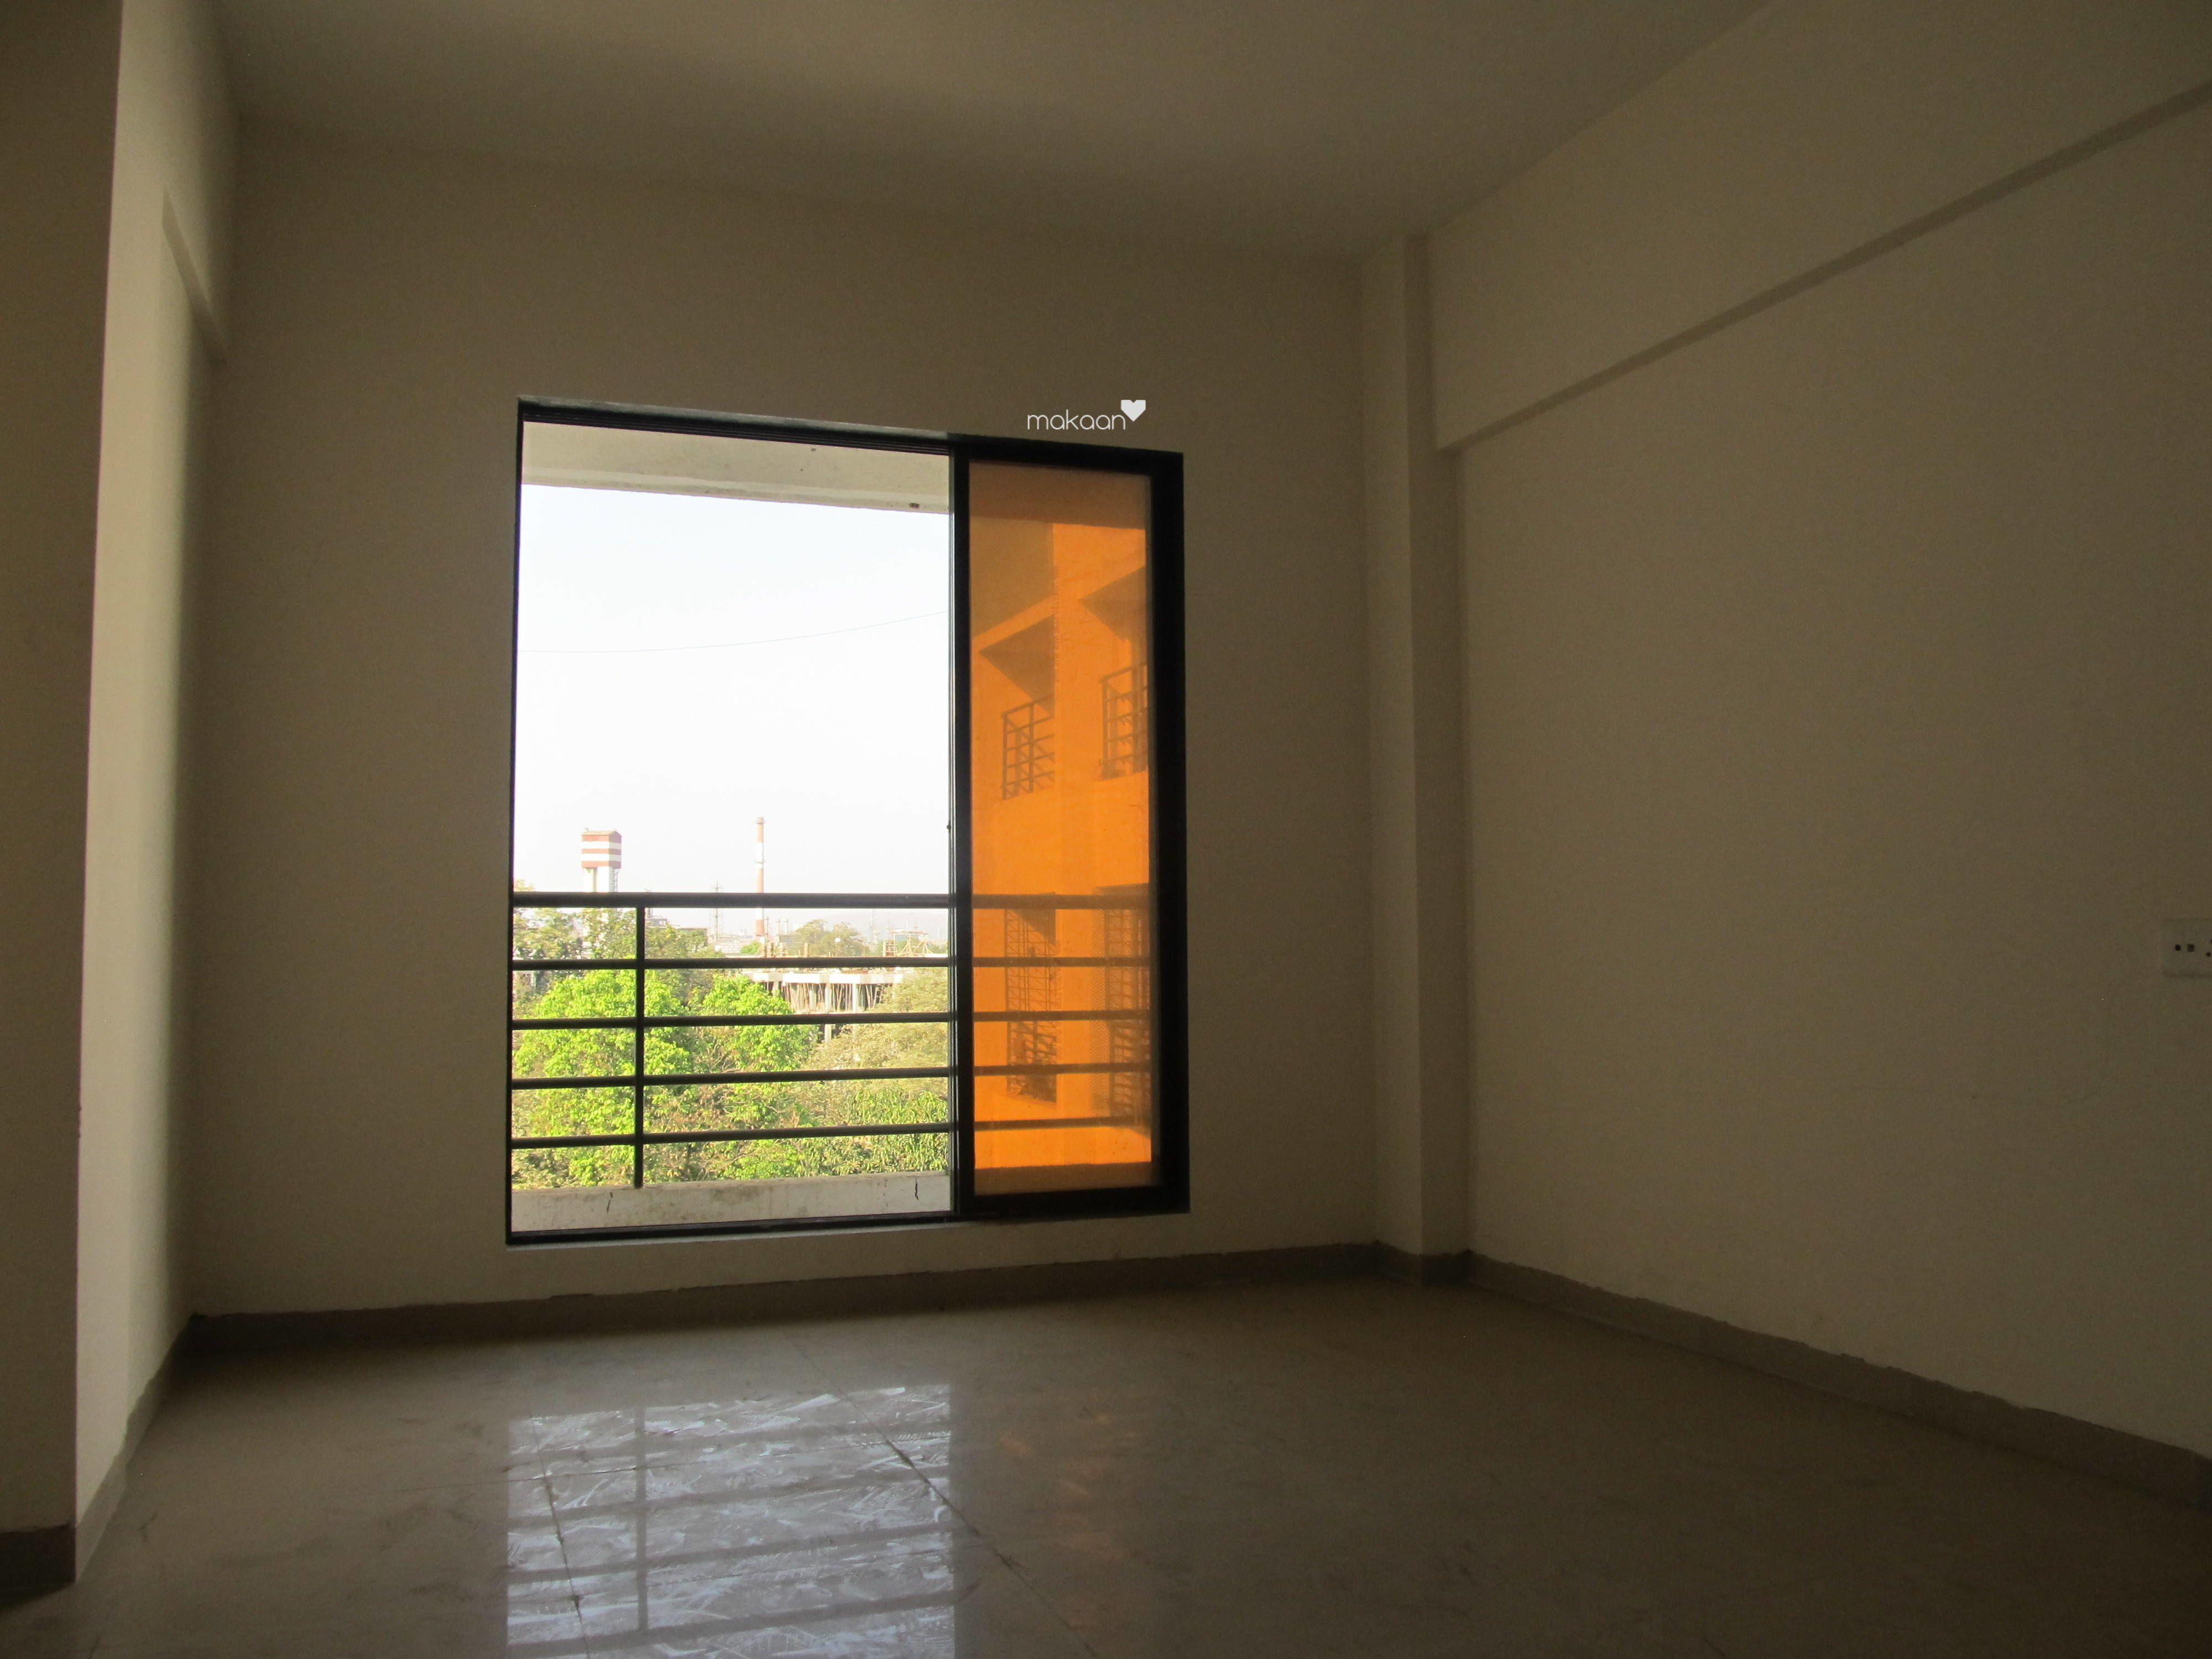 """{    """"0 : 00"""": """"makaan.com, find joy.  """",    """"0 : 03"""": """"makaan presents a beautiful residential apartment at Qualcon Greenwood Estate in Mumbai"""",    """"0 : 09"""": """"this apartment has 2 Bedrooms, 2 Baths, Covered area of 900 square feet and is priced at Rupees 34 lacs"""",    """"0 : 17"""": """"This property is located on 3rd floor, is Under Construction, """",    """"0 : 21"""": """"Amenities include Superior quality Vitrified Tiles flooring in balcony  """",    """"0 : 28"""": """" Oil Bound Distemper """",    """"0 : 33"""": """" Vitrified Tilesflooring in master bedroom  """",    """"0 : 37"""": """" Granite Platform with Stainless Steel Sink  """",    """"0 : 42"""": """" Vitrified Tiles in kitchen """",    """"0 : 46"""": """" Superior quality Vitrified Tiles"""",    """"0 : 49"""": """"this property was Launched in July 2011, has 524 apartments  and will complete in December 2017  According to our research, it has a Livability Score of 7, and has a locality score of 9 """",    """"1 : 06"""": """"  """",    """"1 : 07"""": """"This property is brought to you by Indesh Singh, a renowned seller in locality with a seller rating of 10"""",    """"1 : 13"""": """"  Are you interested? so lets meet soon to discuss your requirements  """"}"""